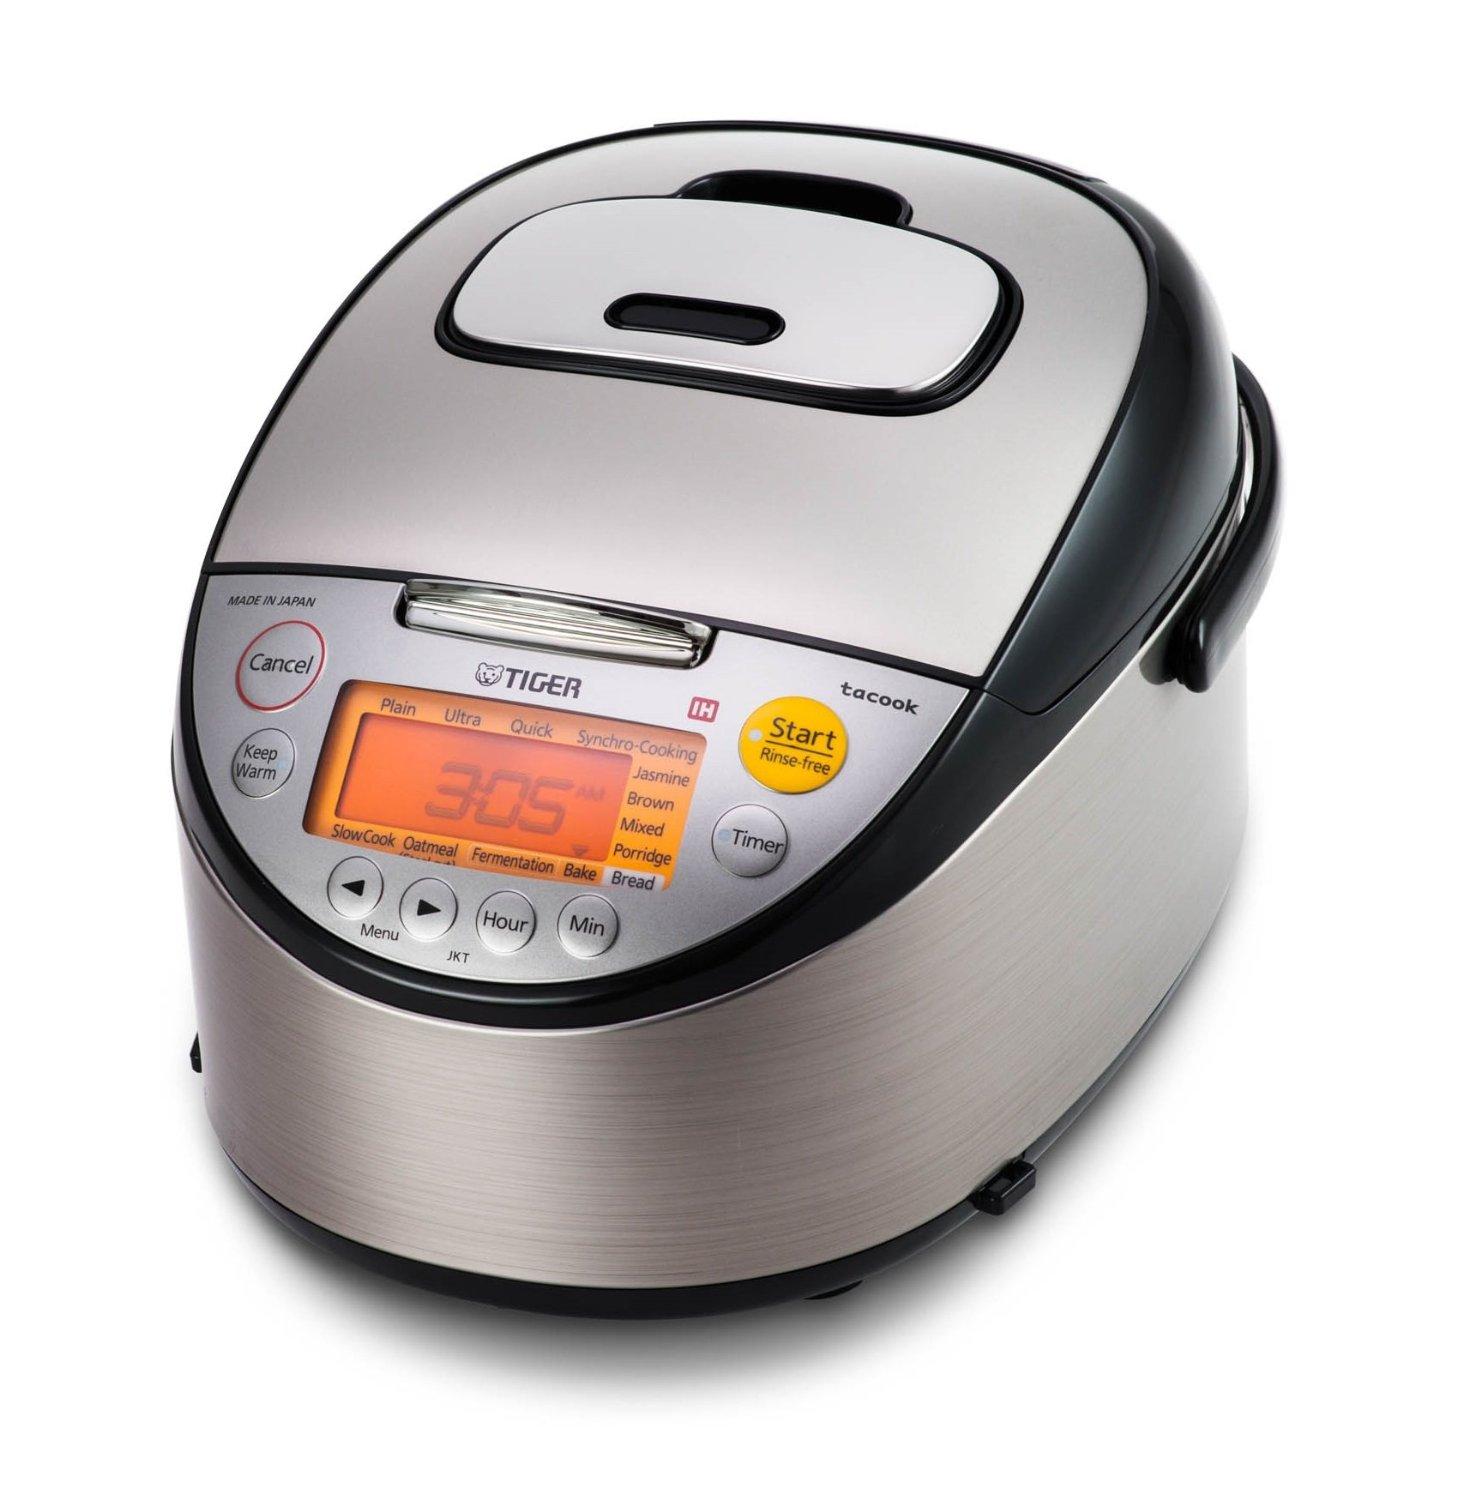 Tiger JKT-S10U-K 5.5-Cup (Uncooked) IH Rice Cooker with Slow Cooker & Bread Maker, Stainless Steel Black